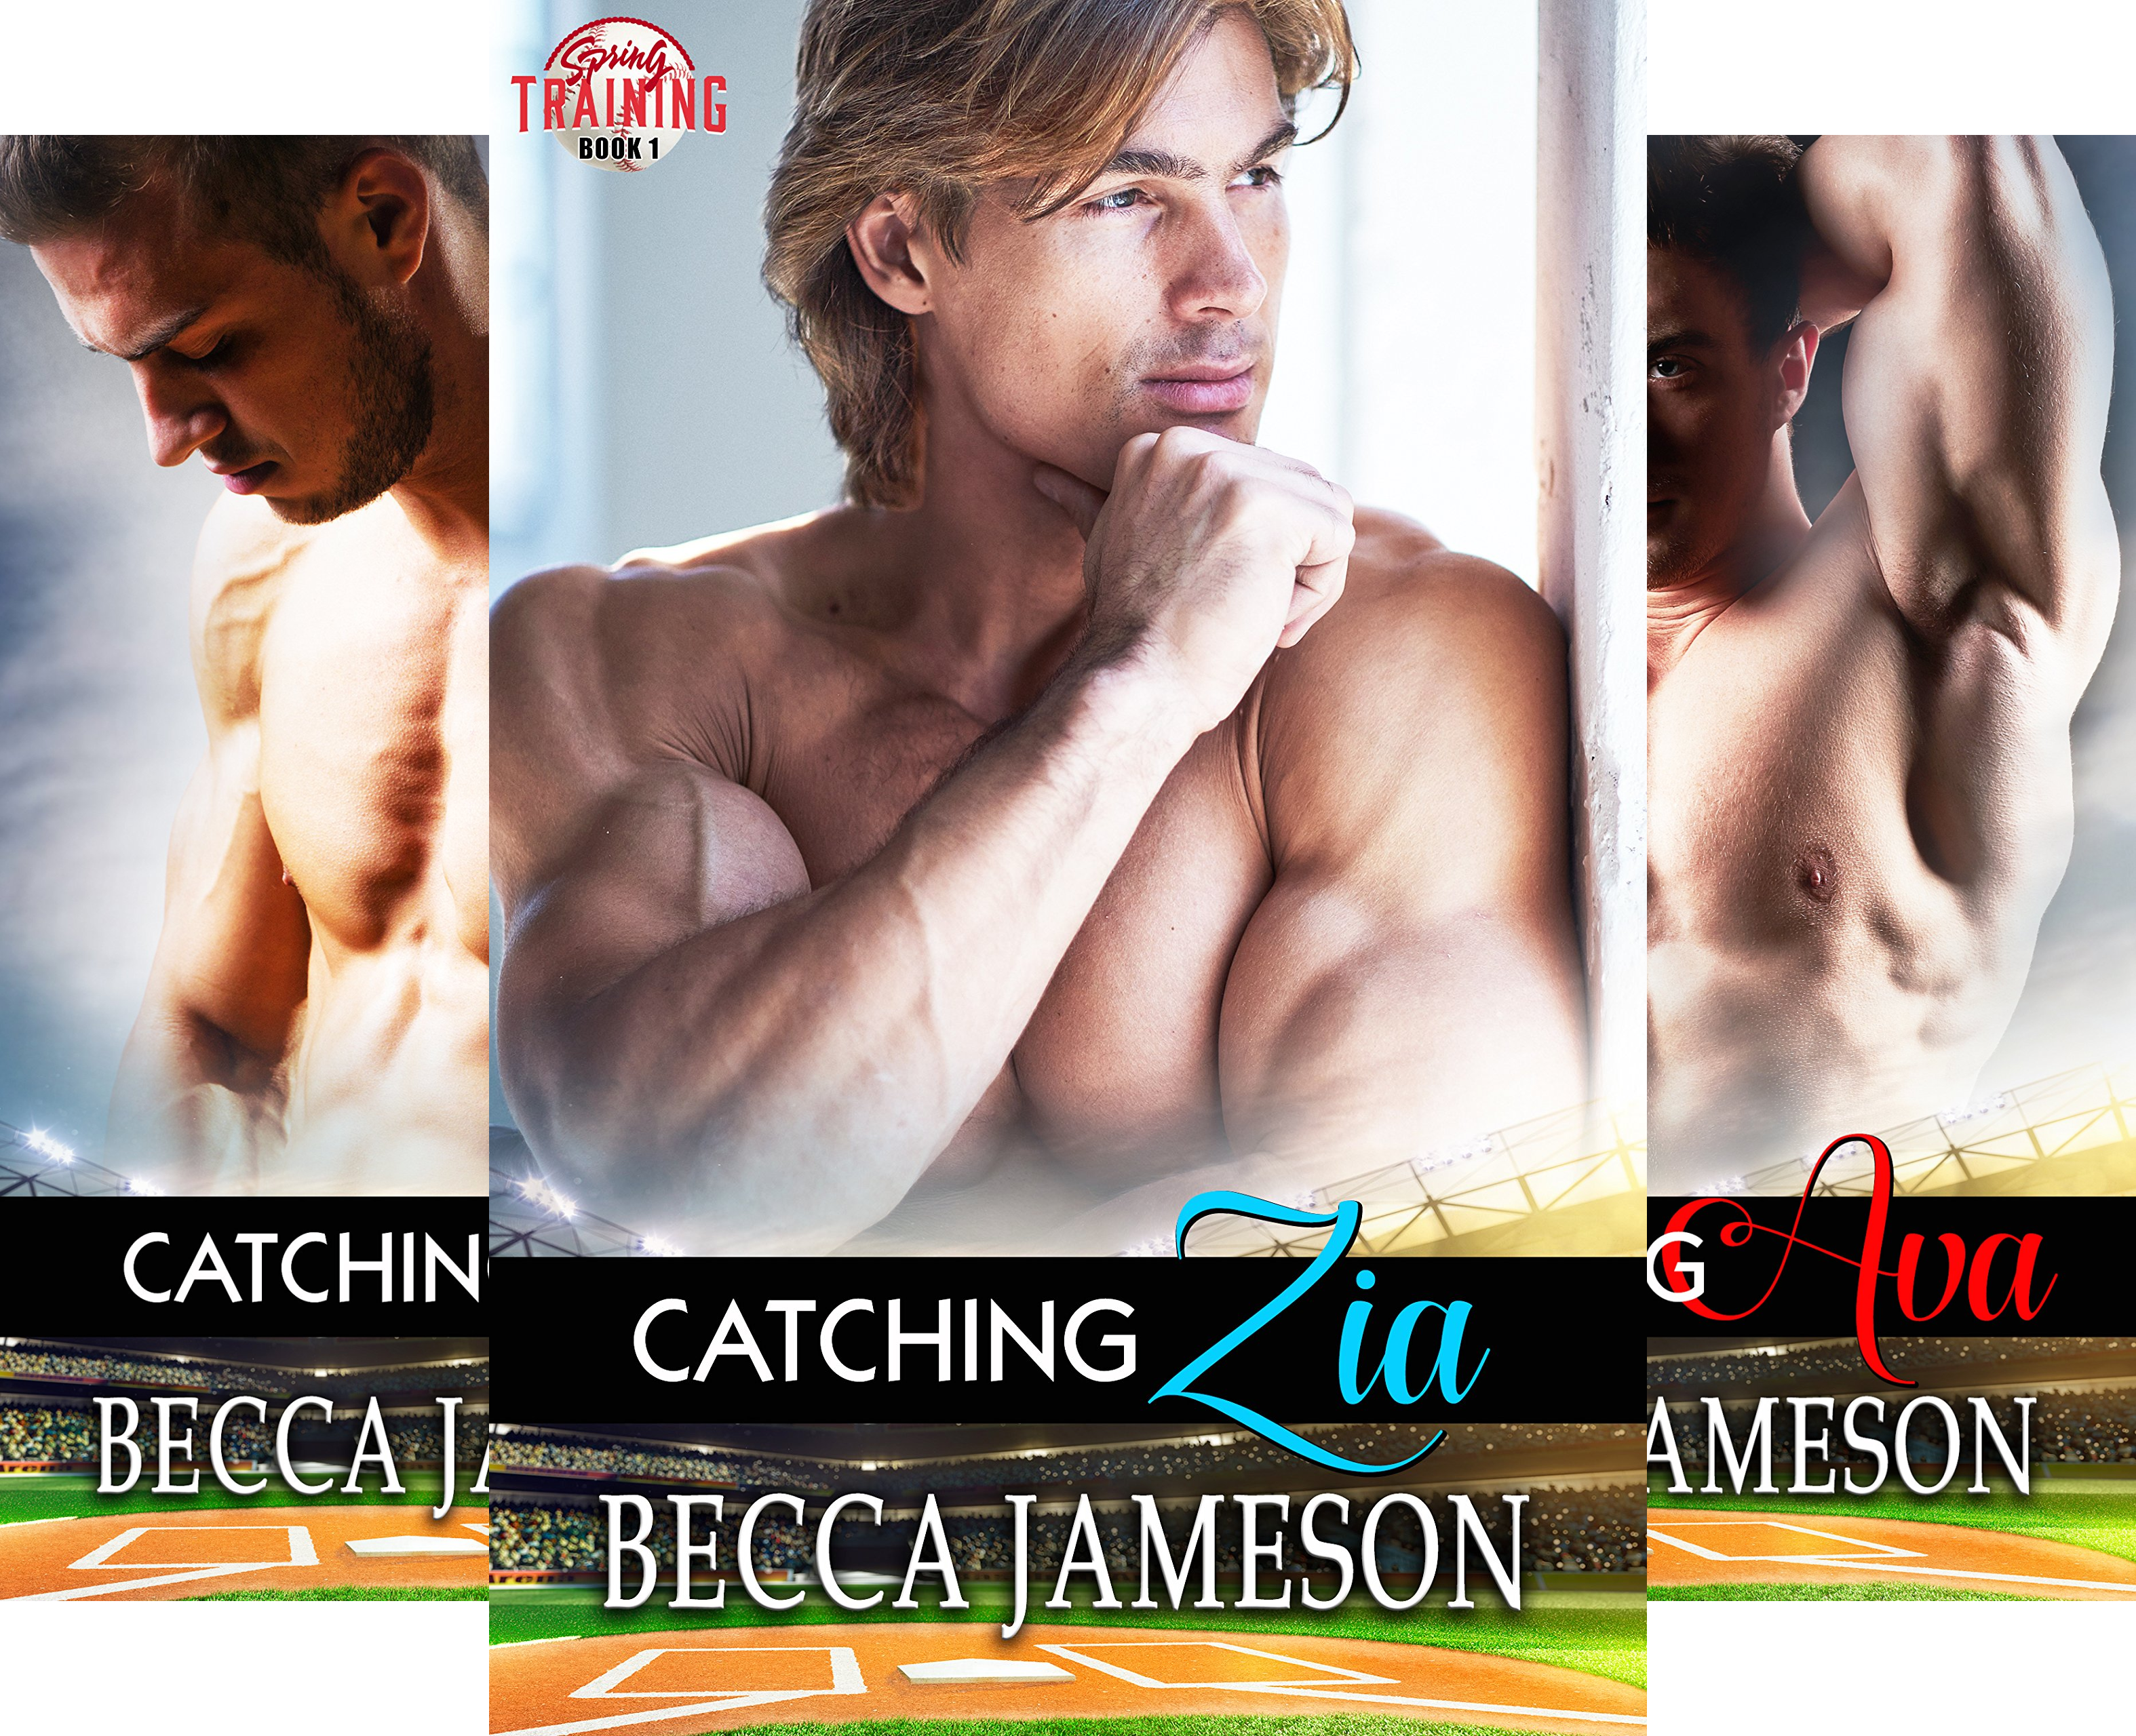 Spring Training (3 Book Series)